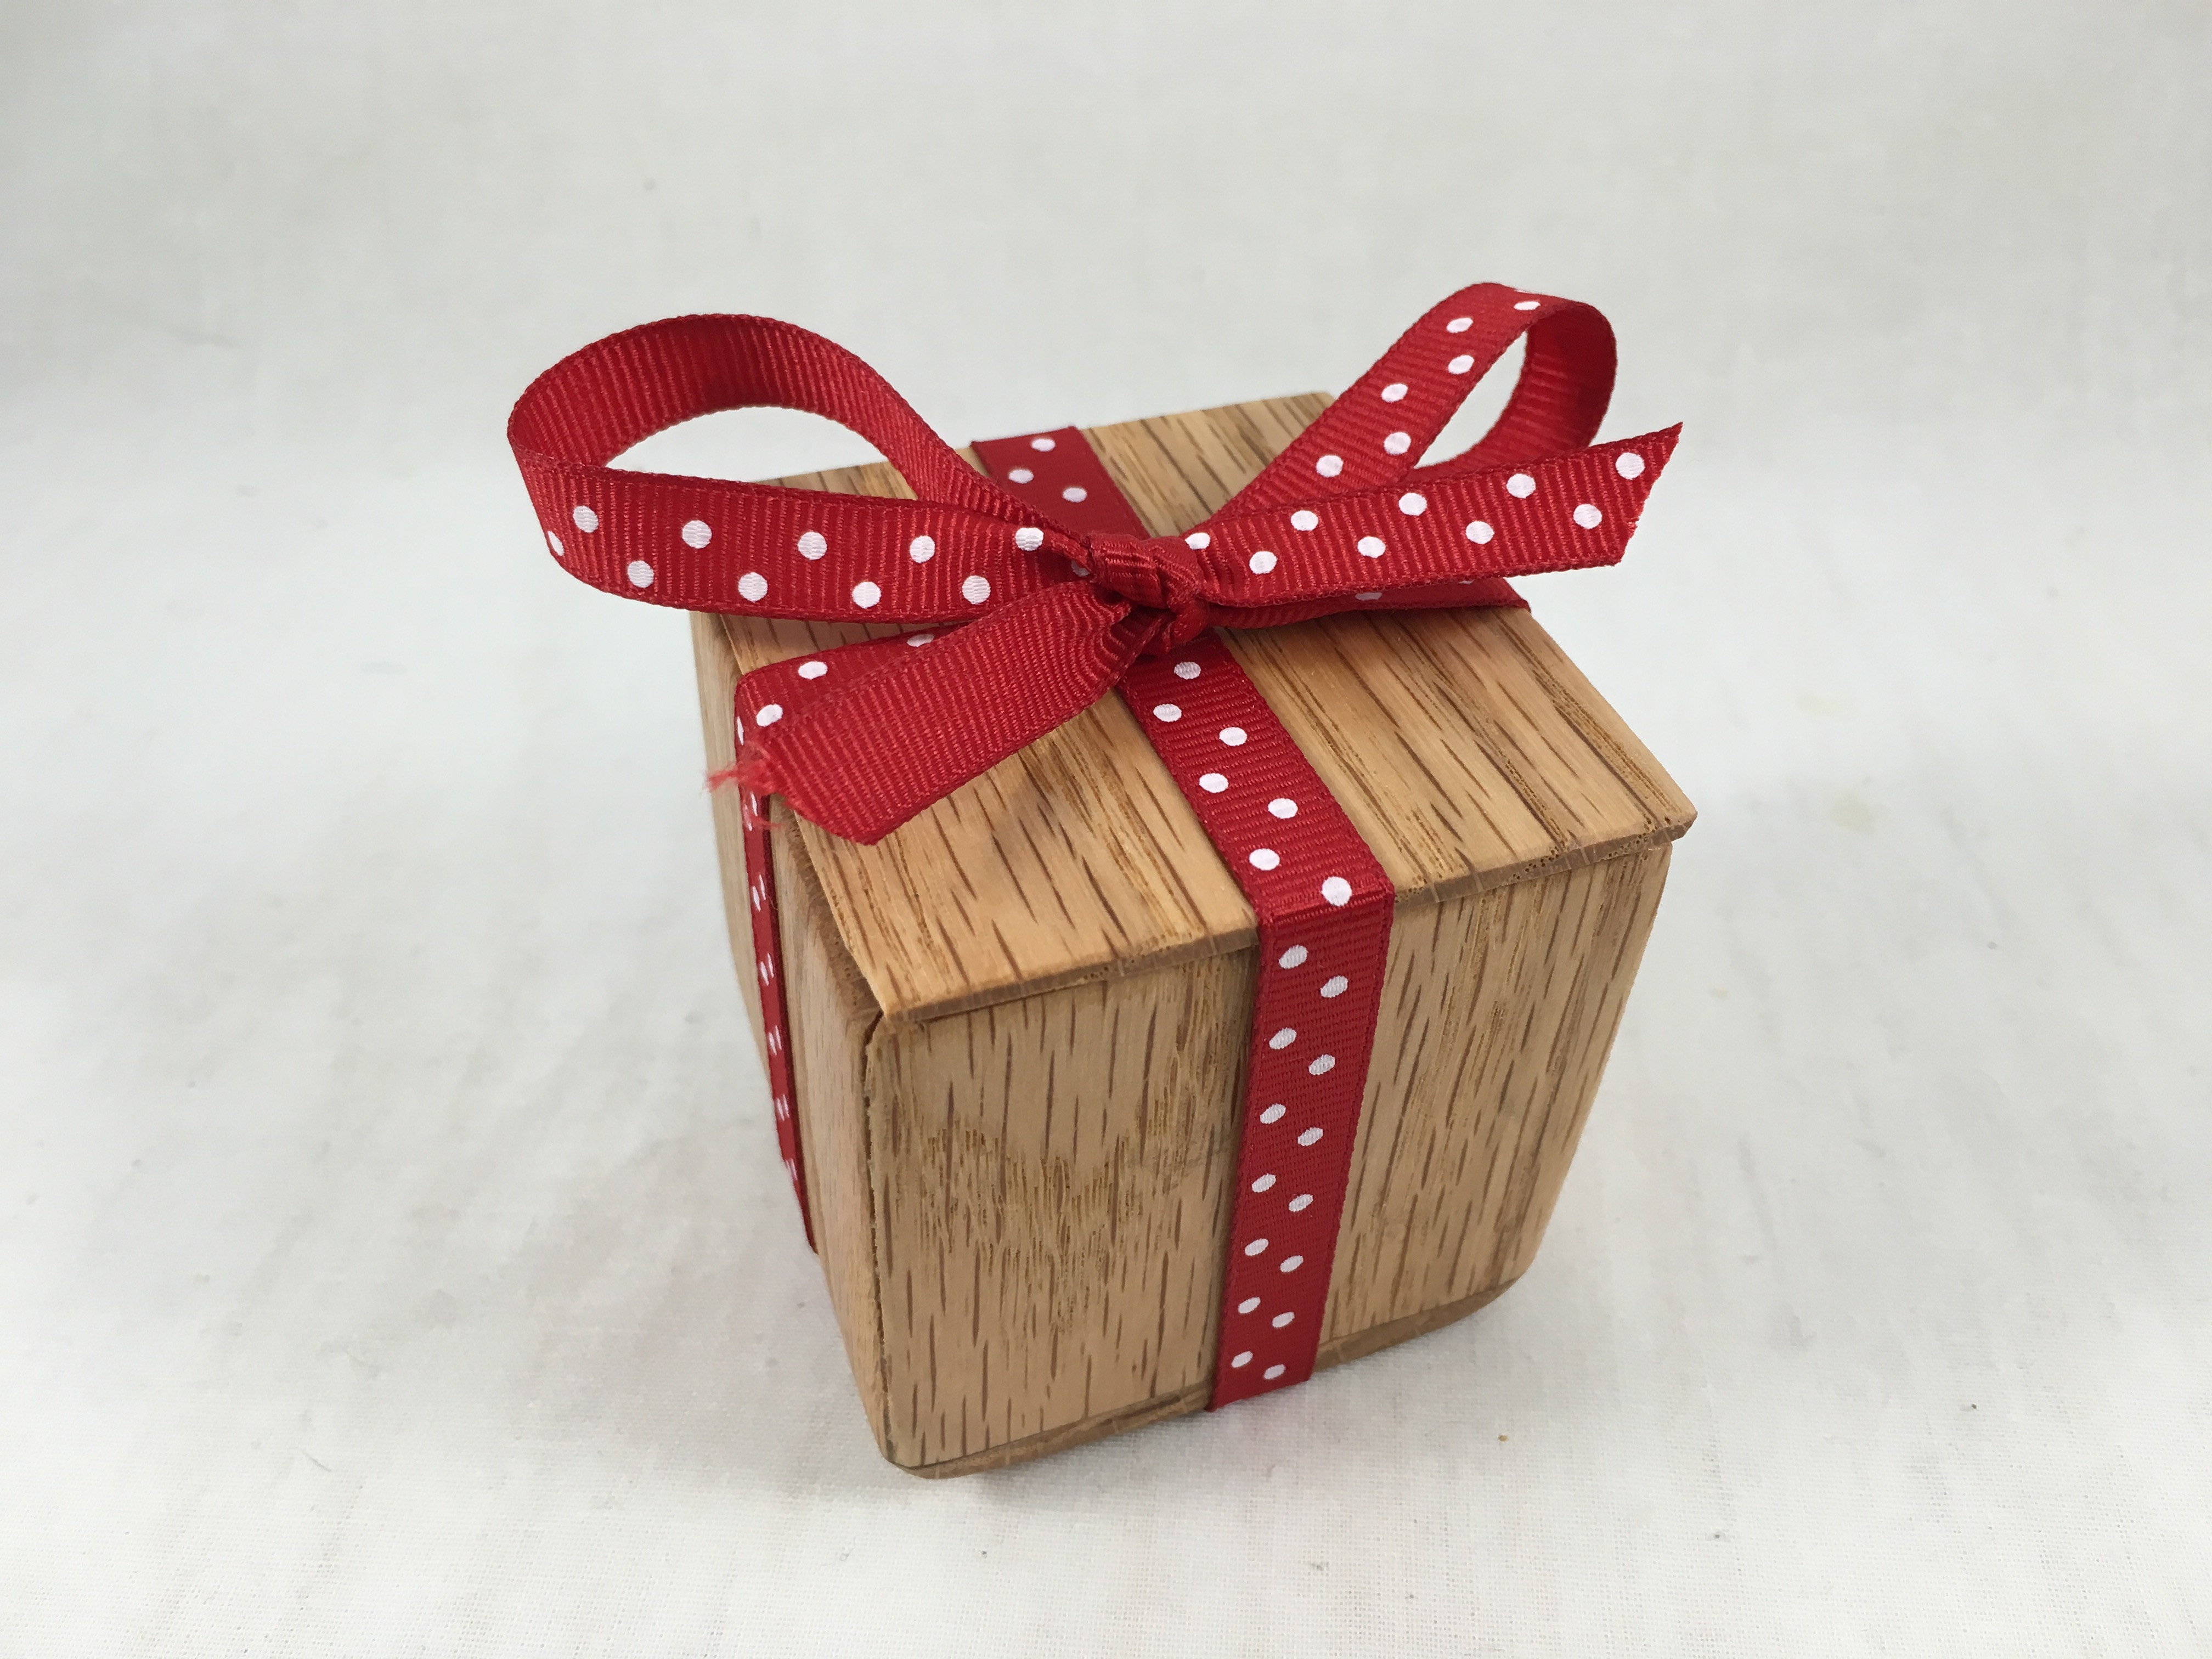 Let's Make a Small Gift Box